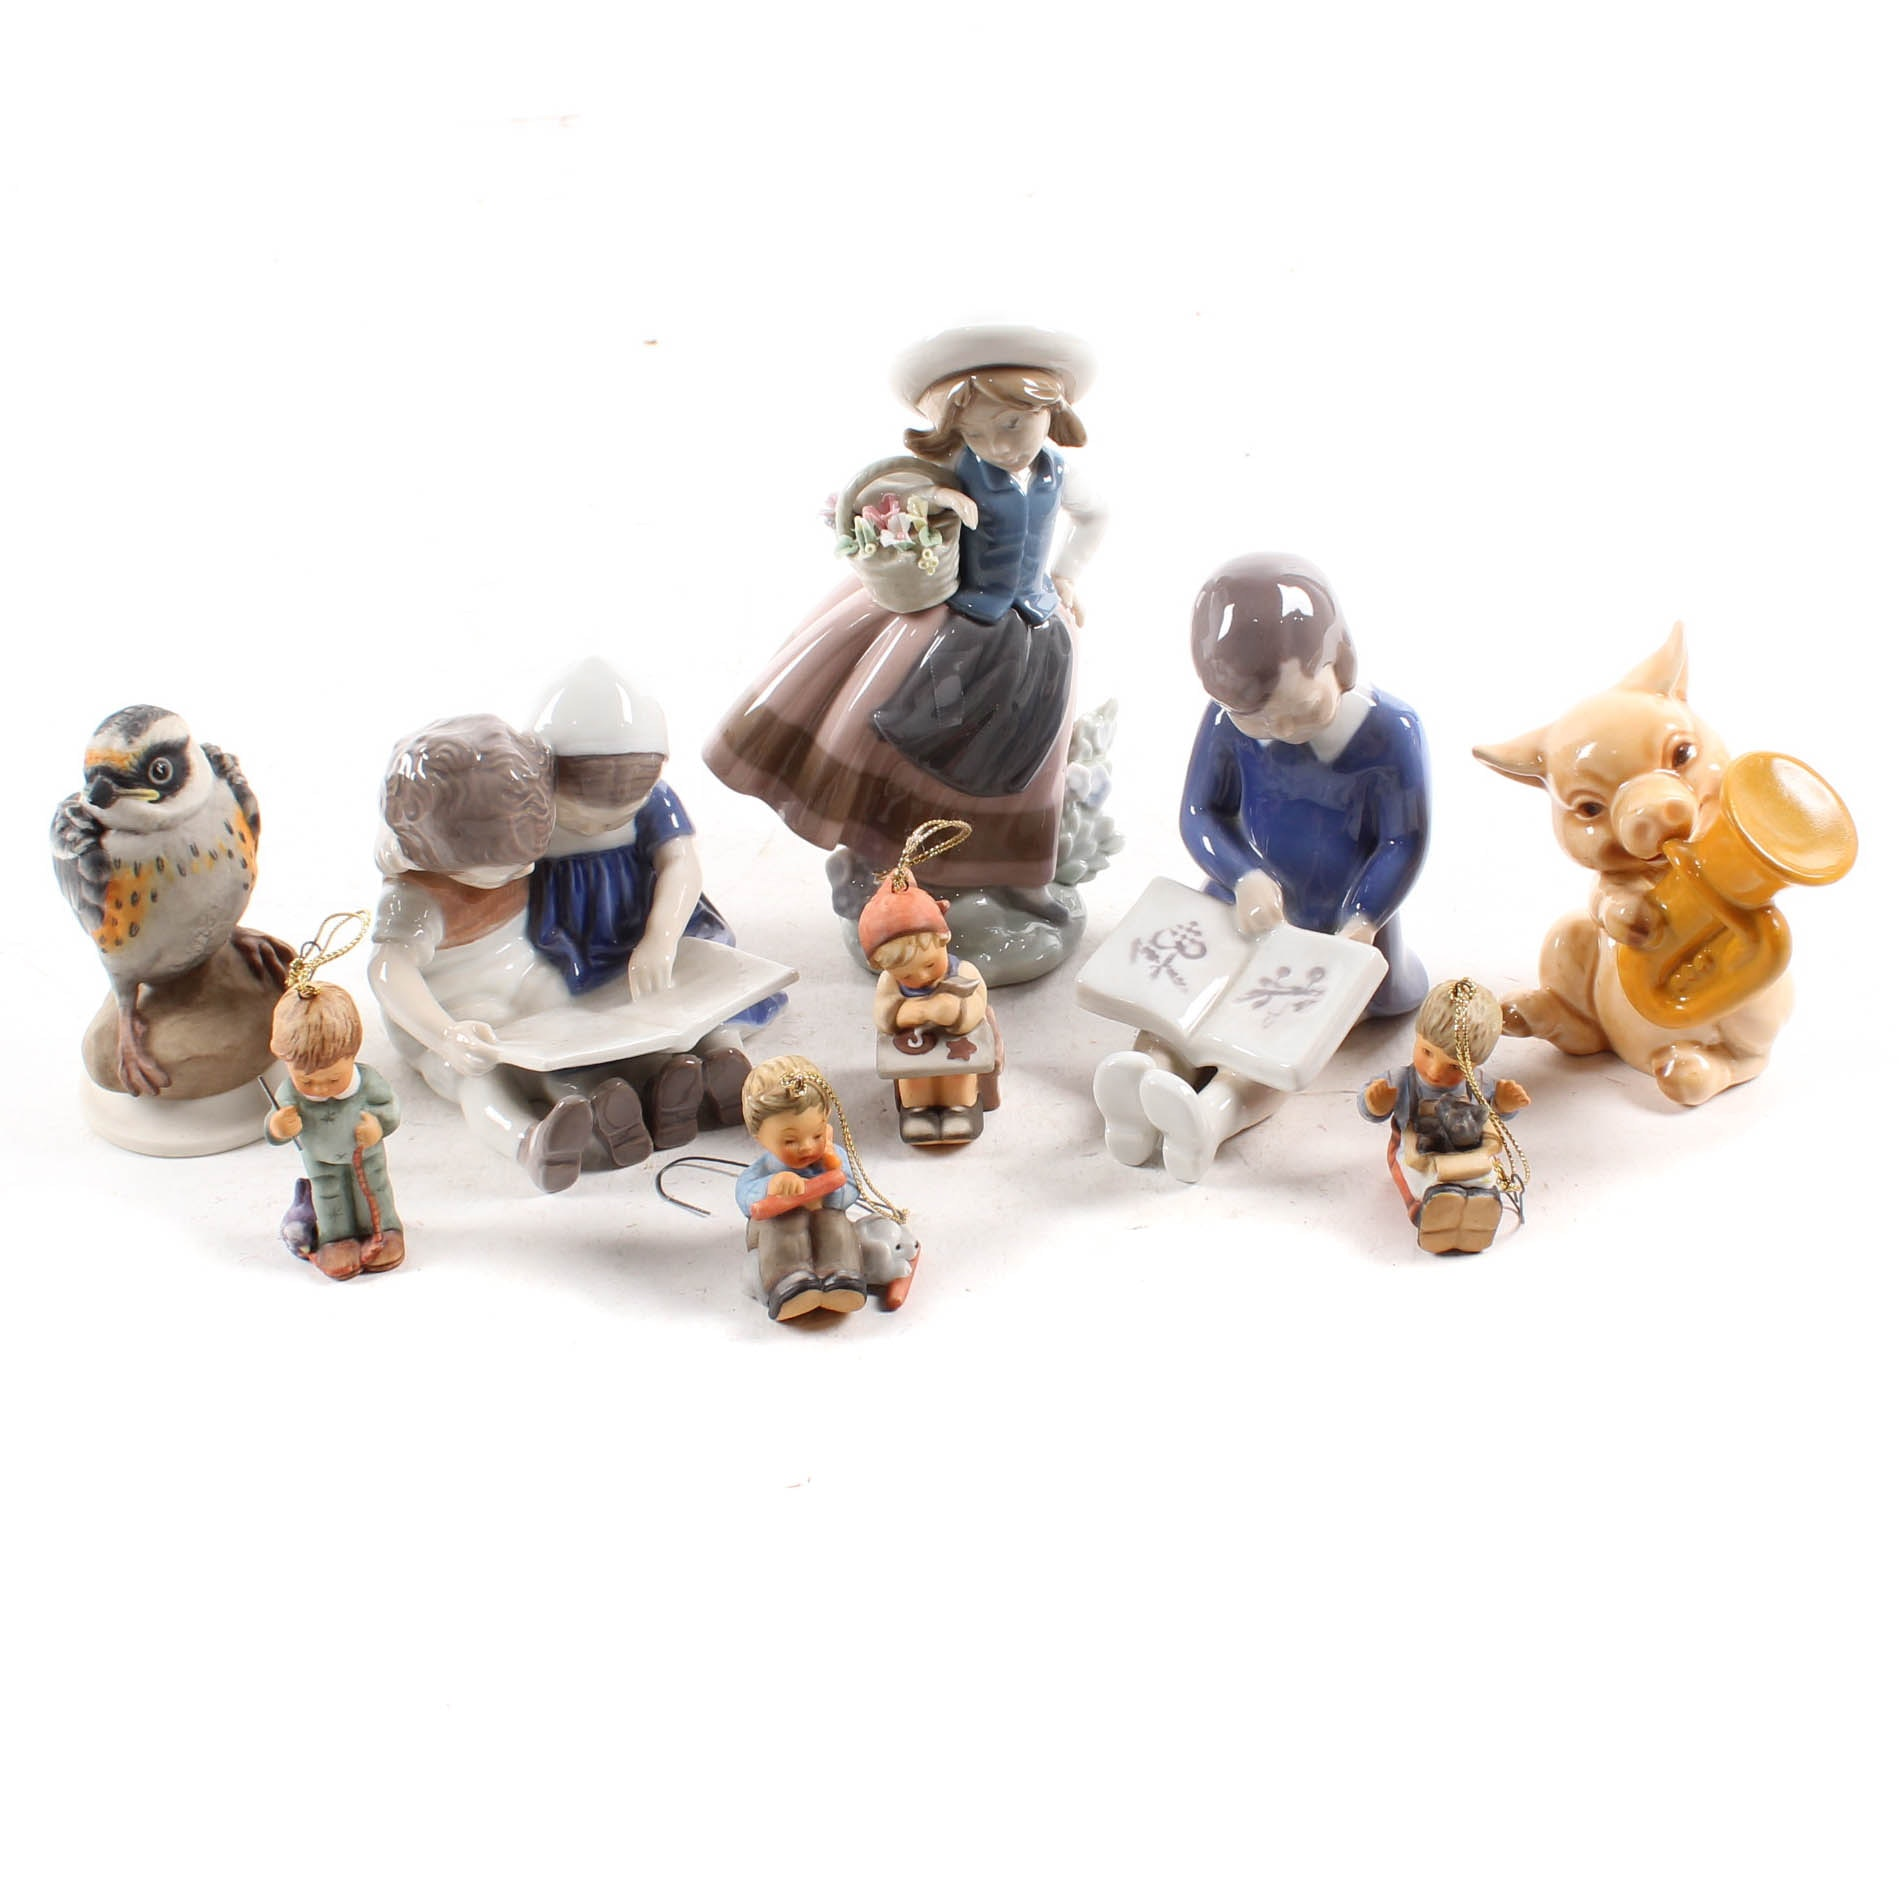 Porcelain Figures with Boehm, Goebel and Lladro